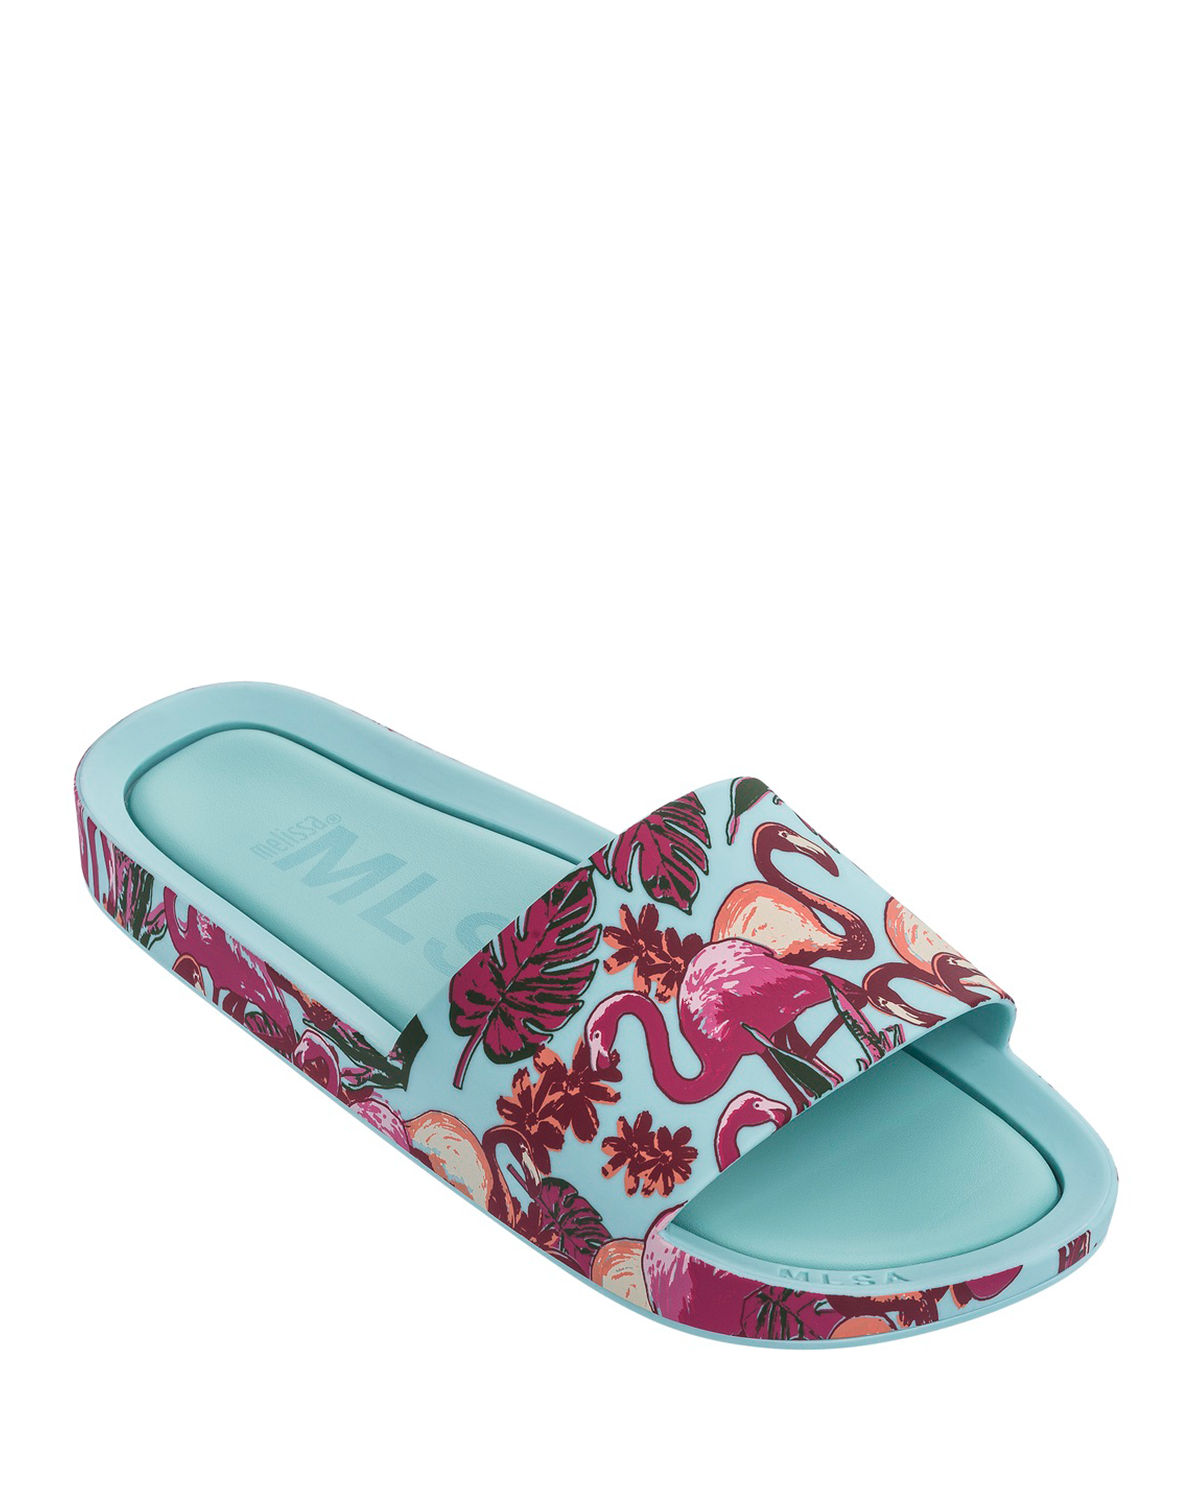 Mel Beach Slide Flamingo Sandal Kids